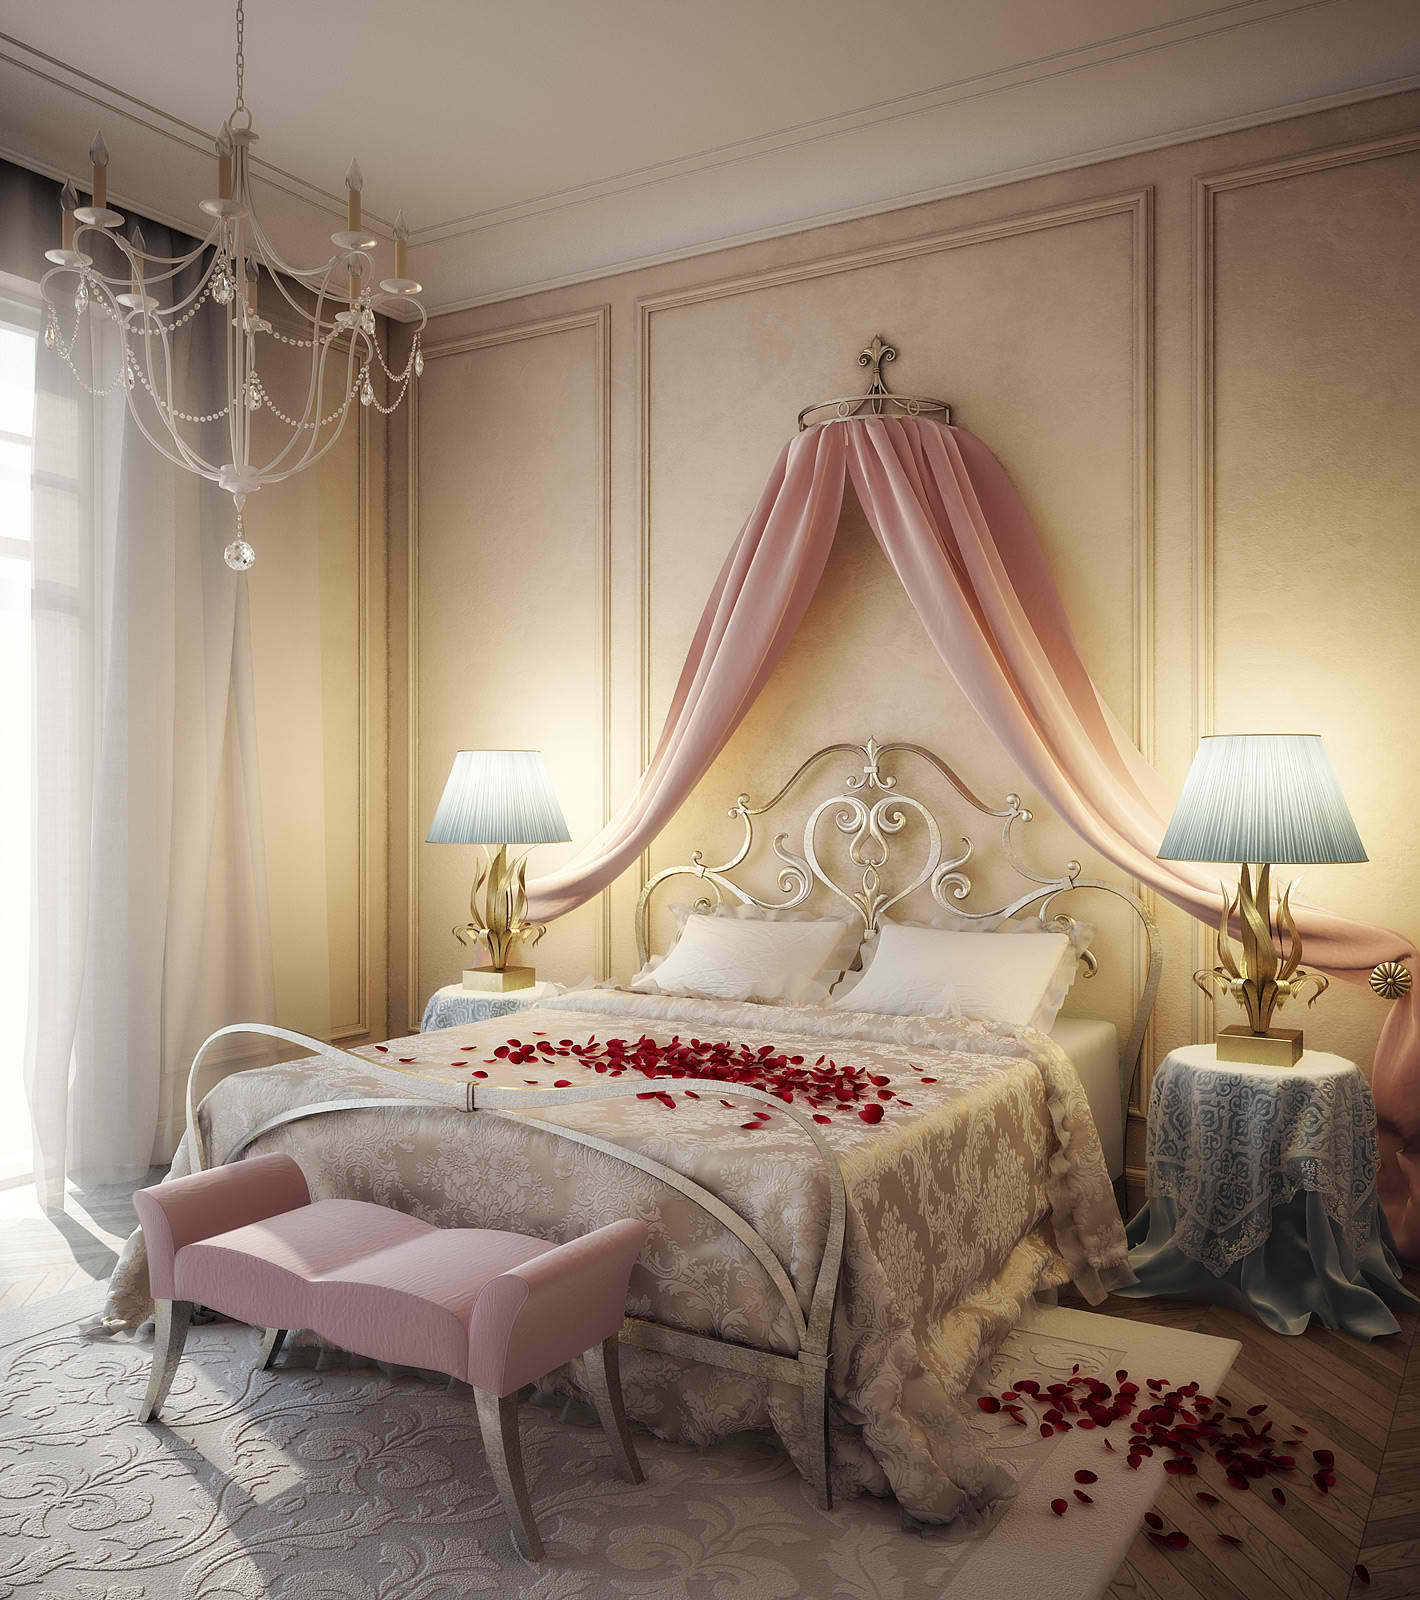 20 romantic bedroom ideas decoholic for Bedroom decorating ideas